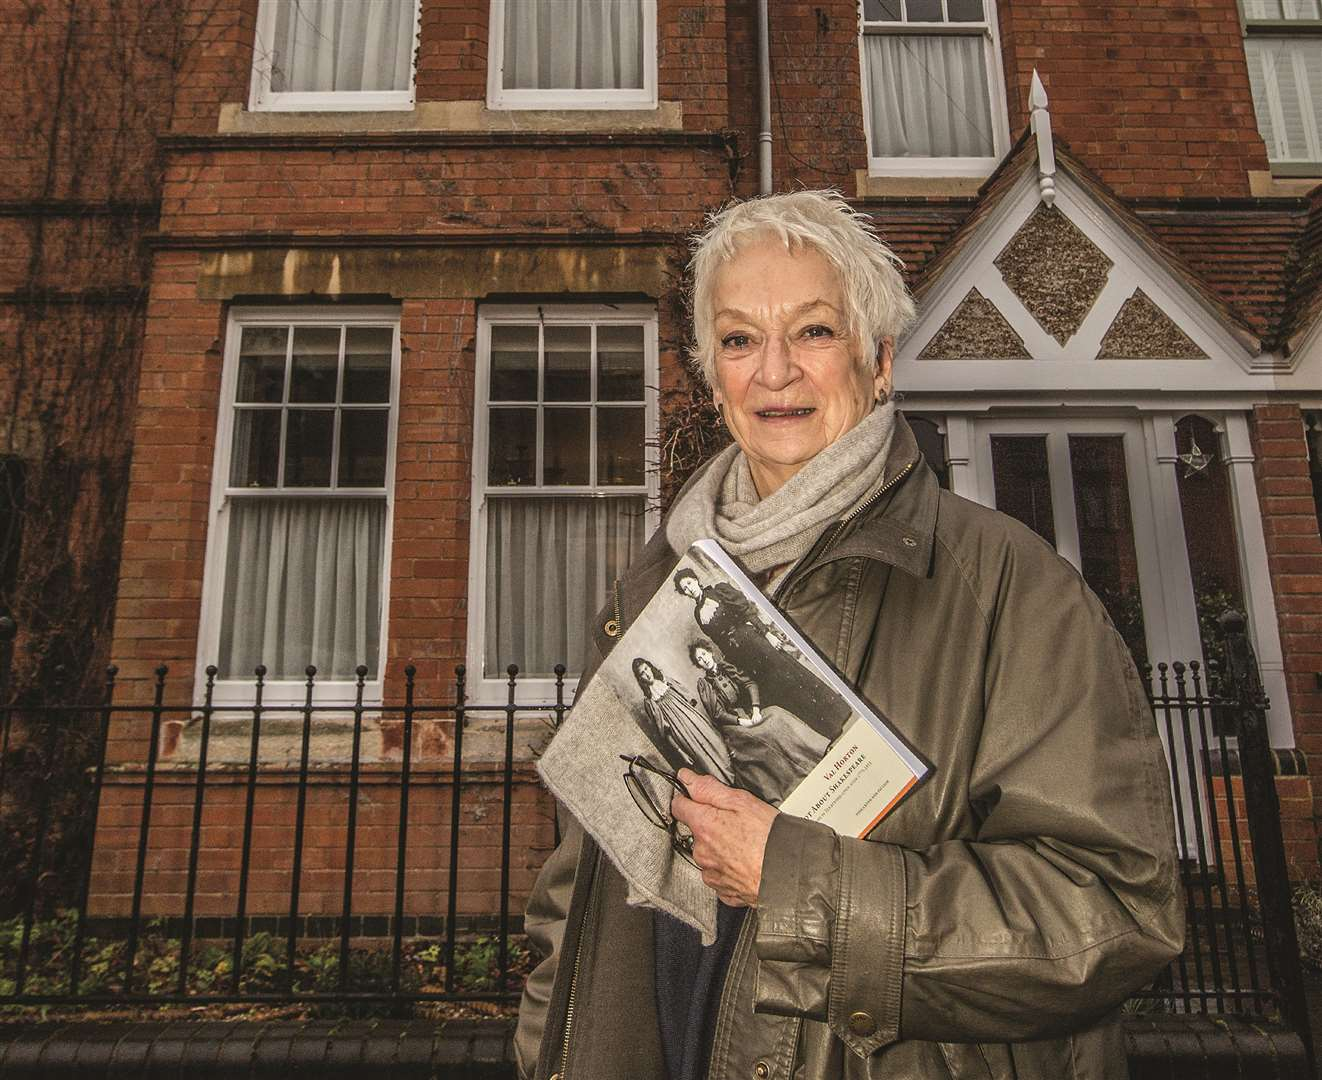 Val Horton with her new book outside the house that started it all. Photo copyright: Mark Williamson/Stratford Herald